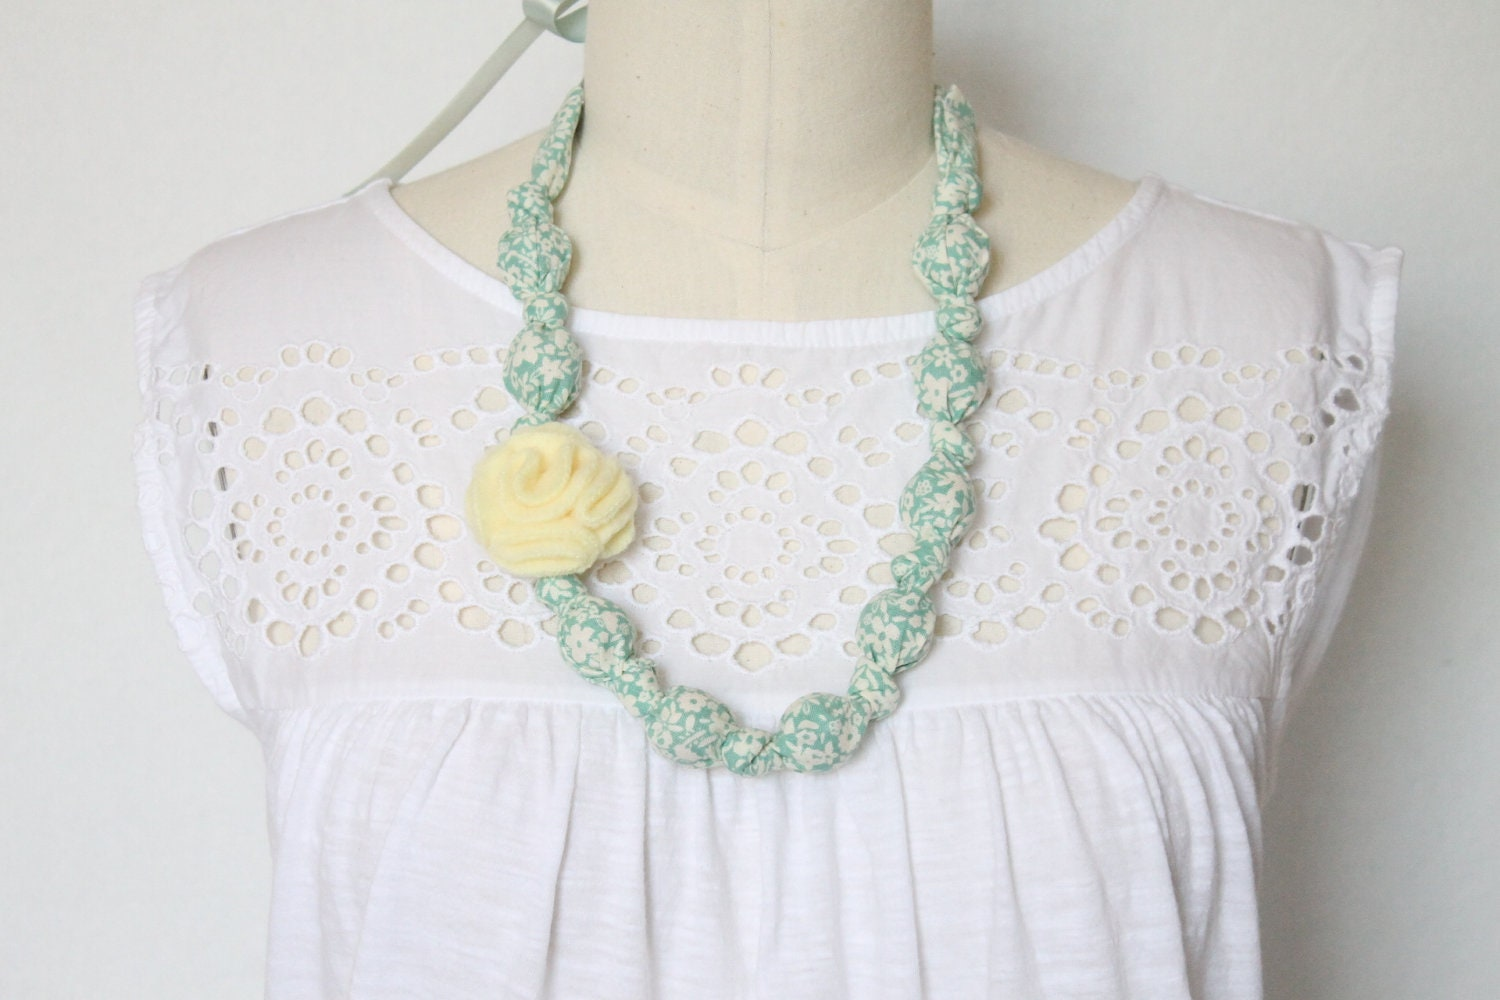 fabric necklaceteething necklace chomping necklace nursing